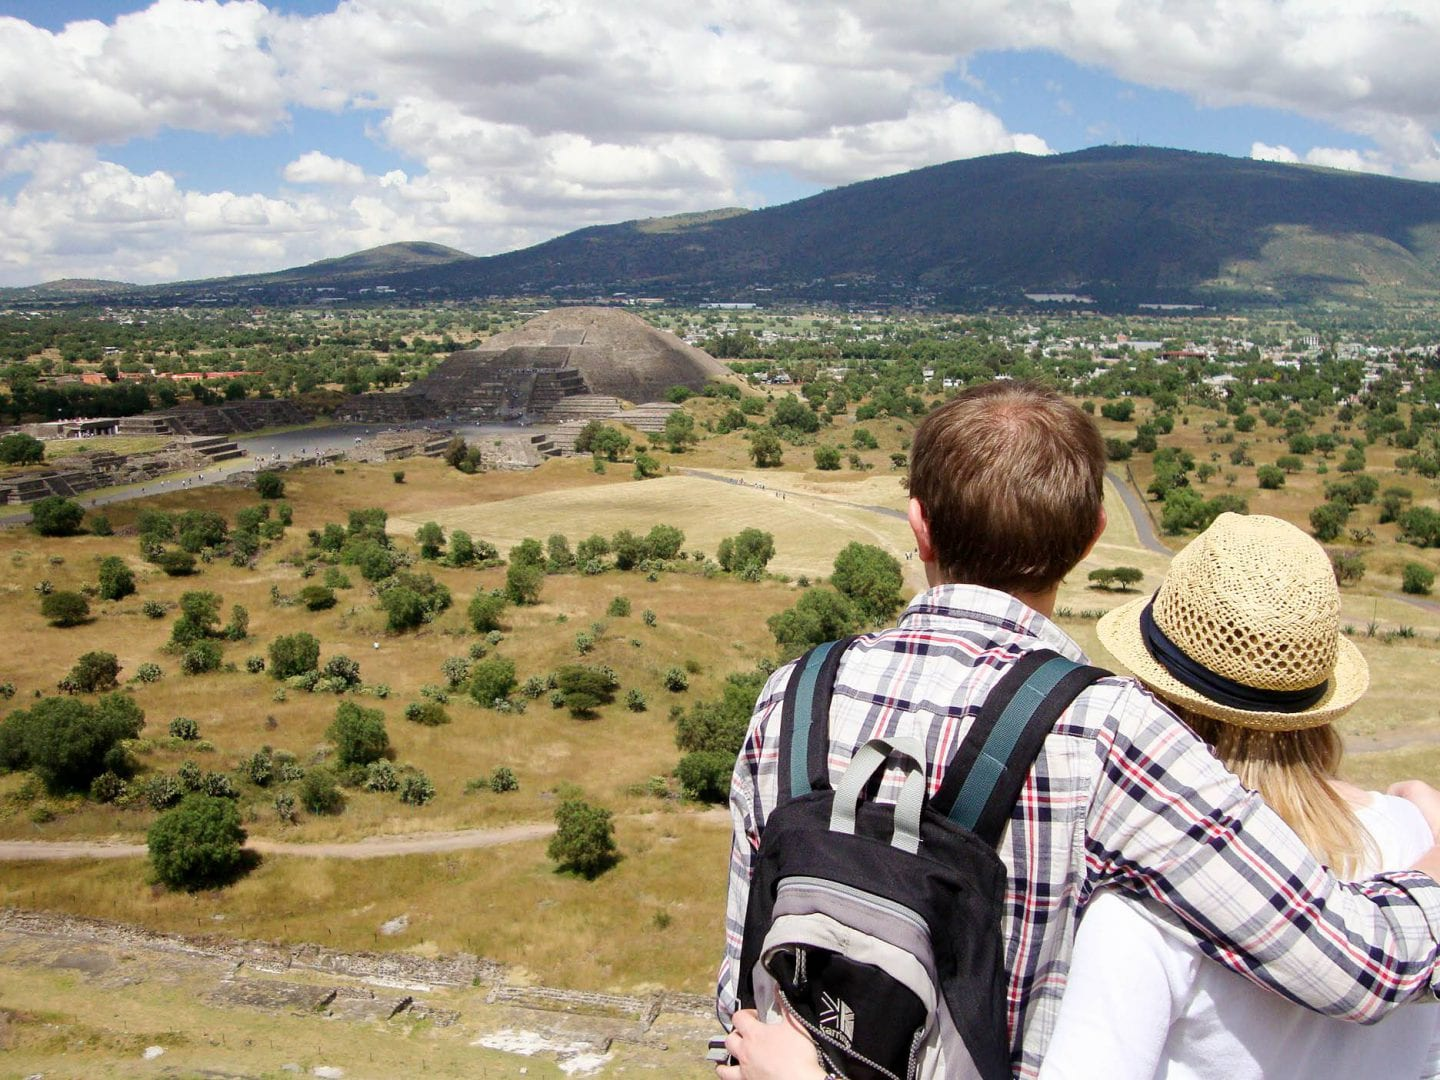 What makes a good travel buddy